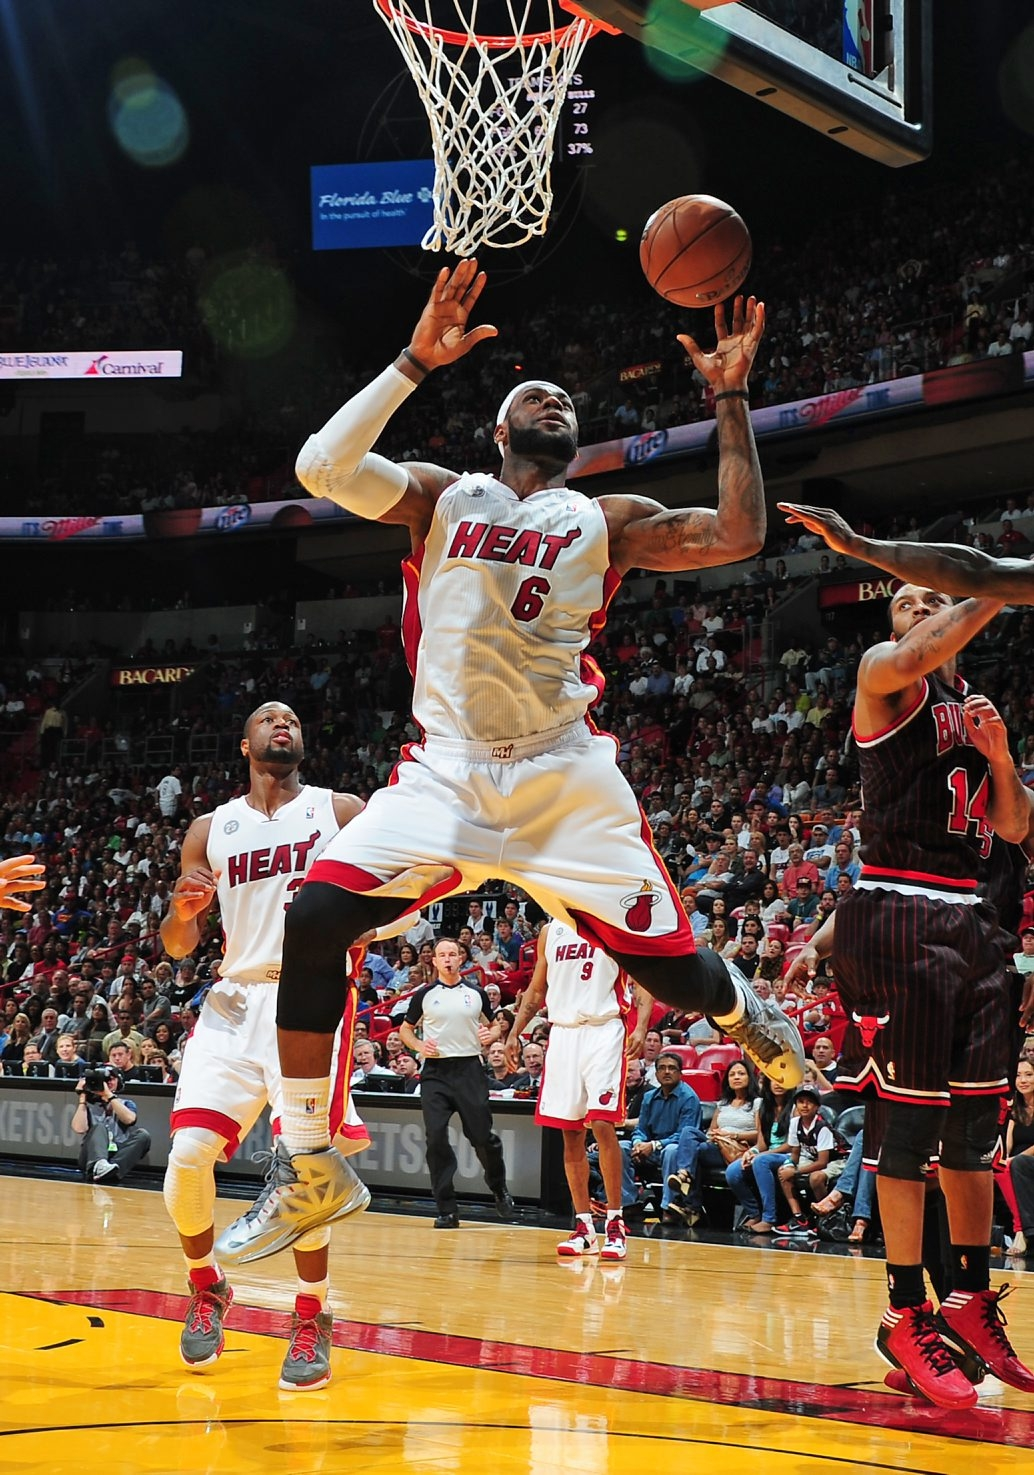 LeBron James and the Miami Heat are going for a repeat championship.